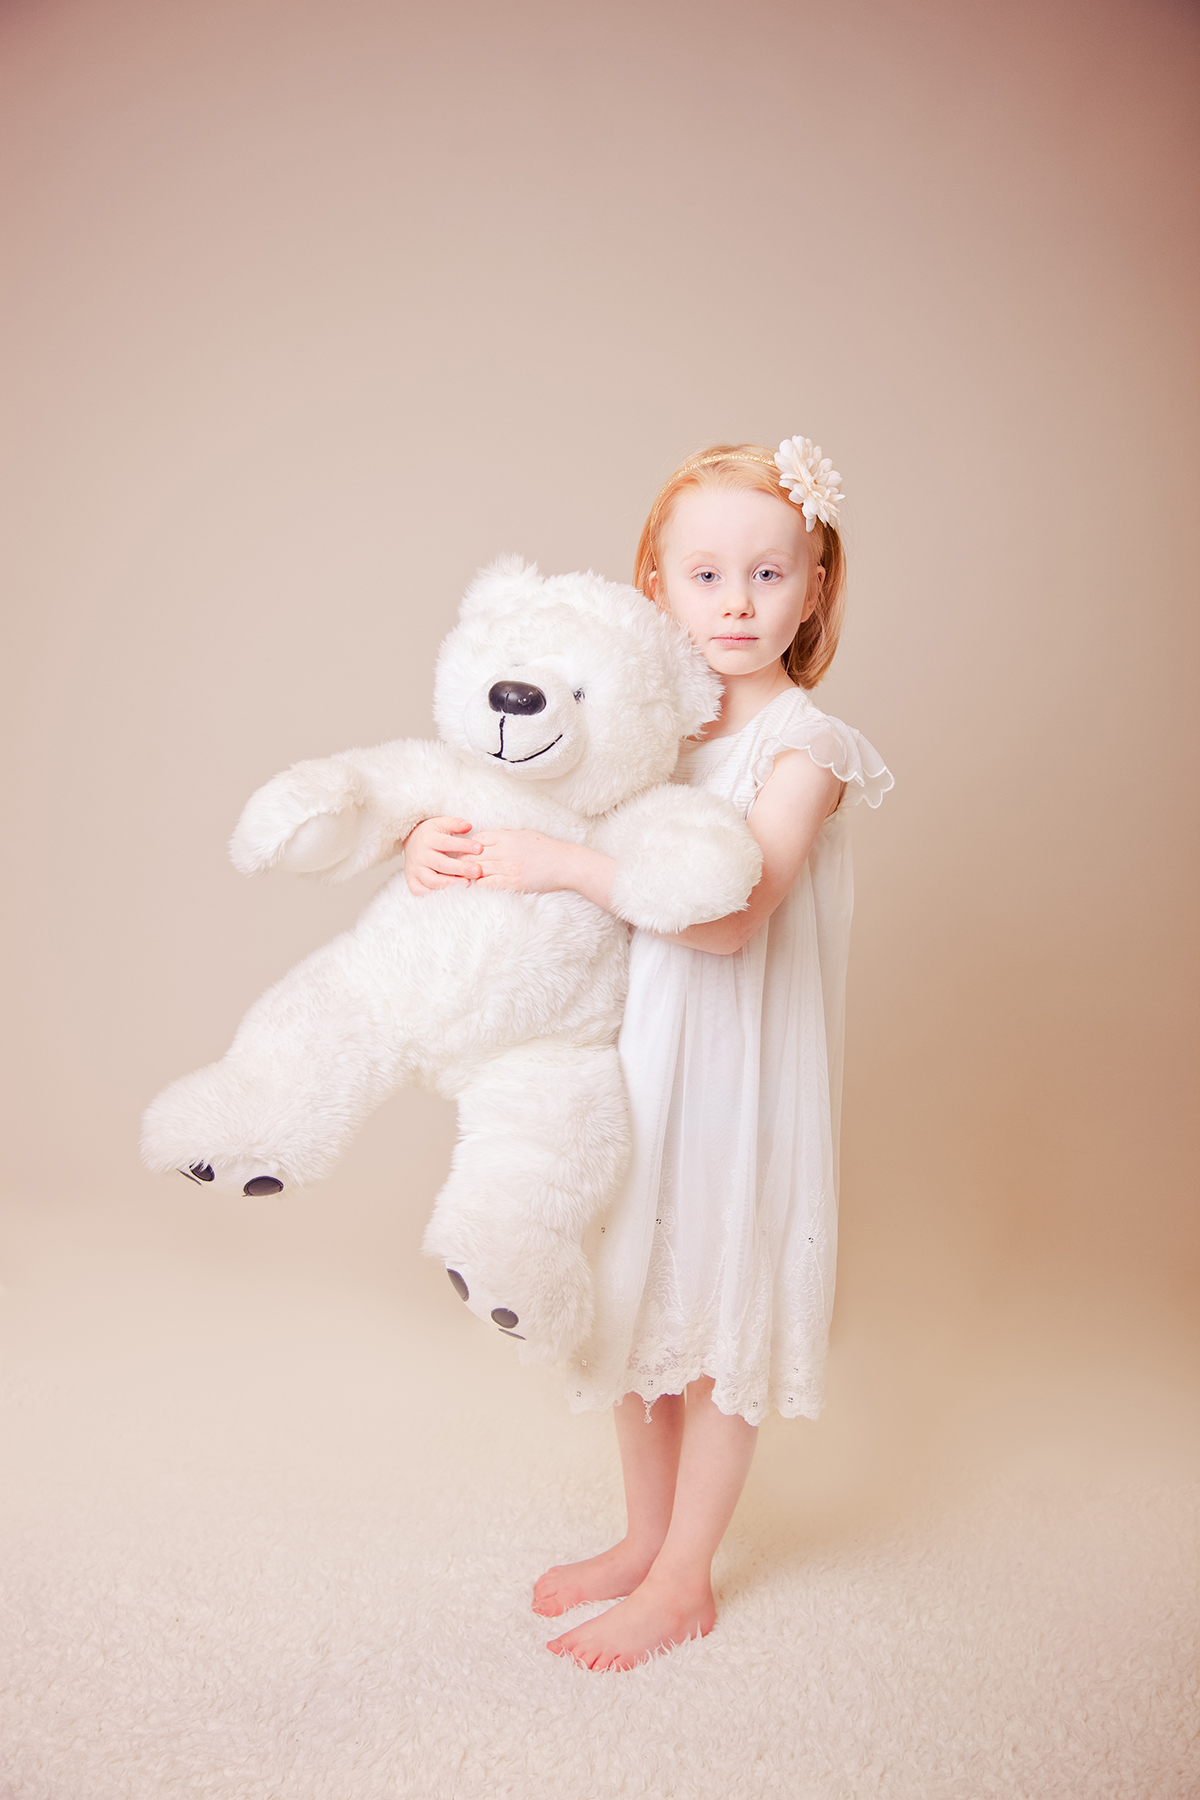 classical portrait girl with bear, Chester children's photographer, cheshire family photography